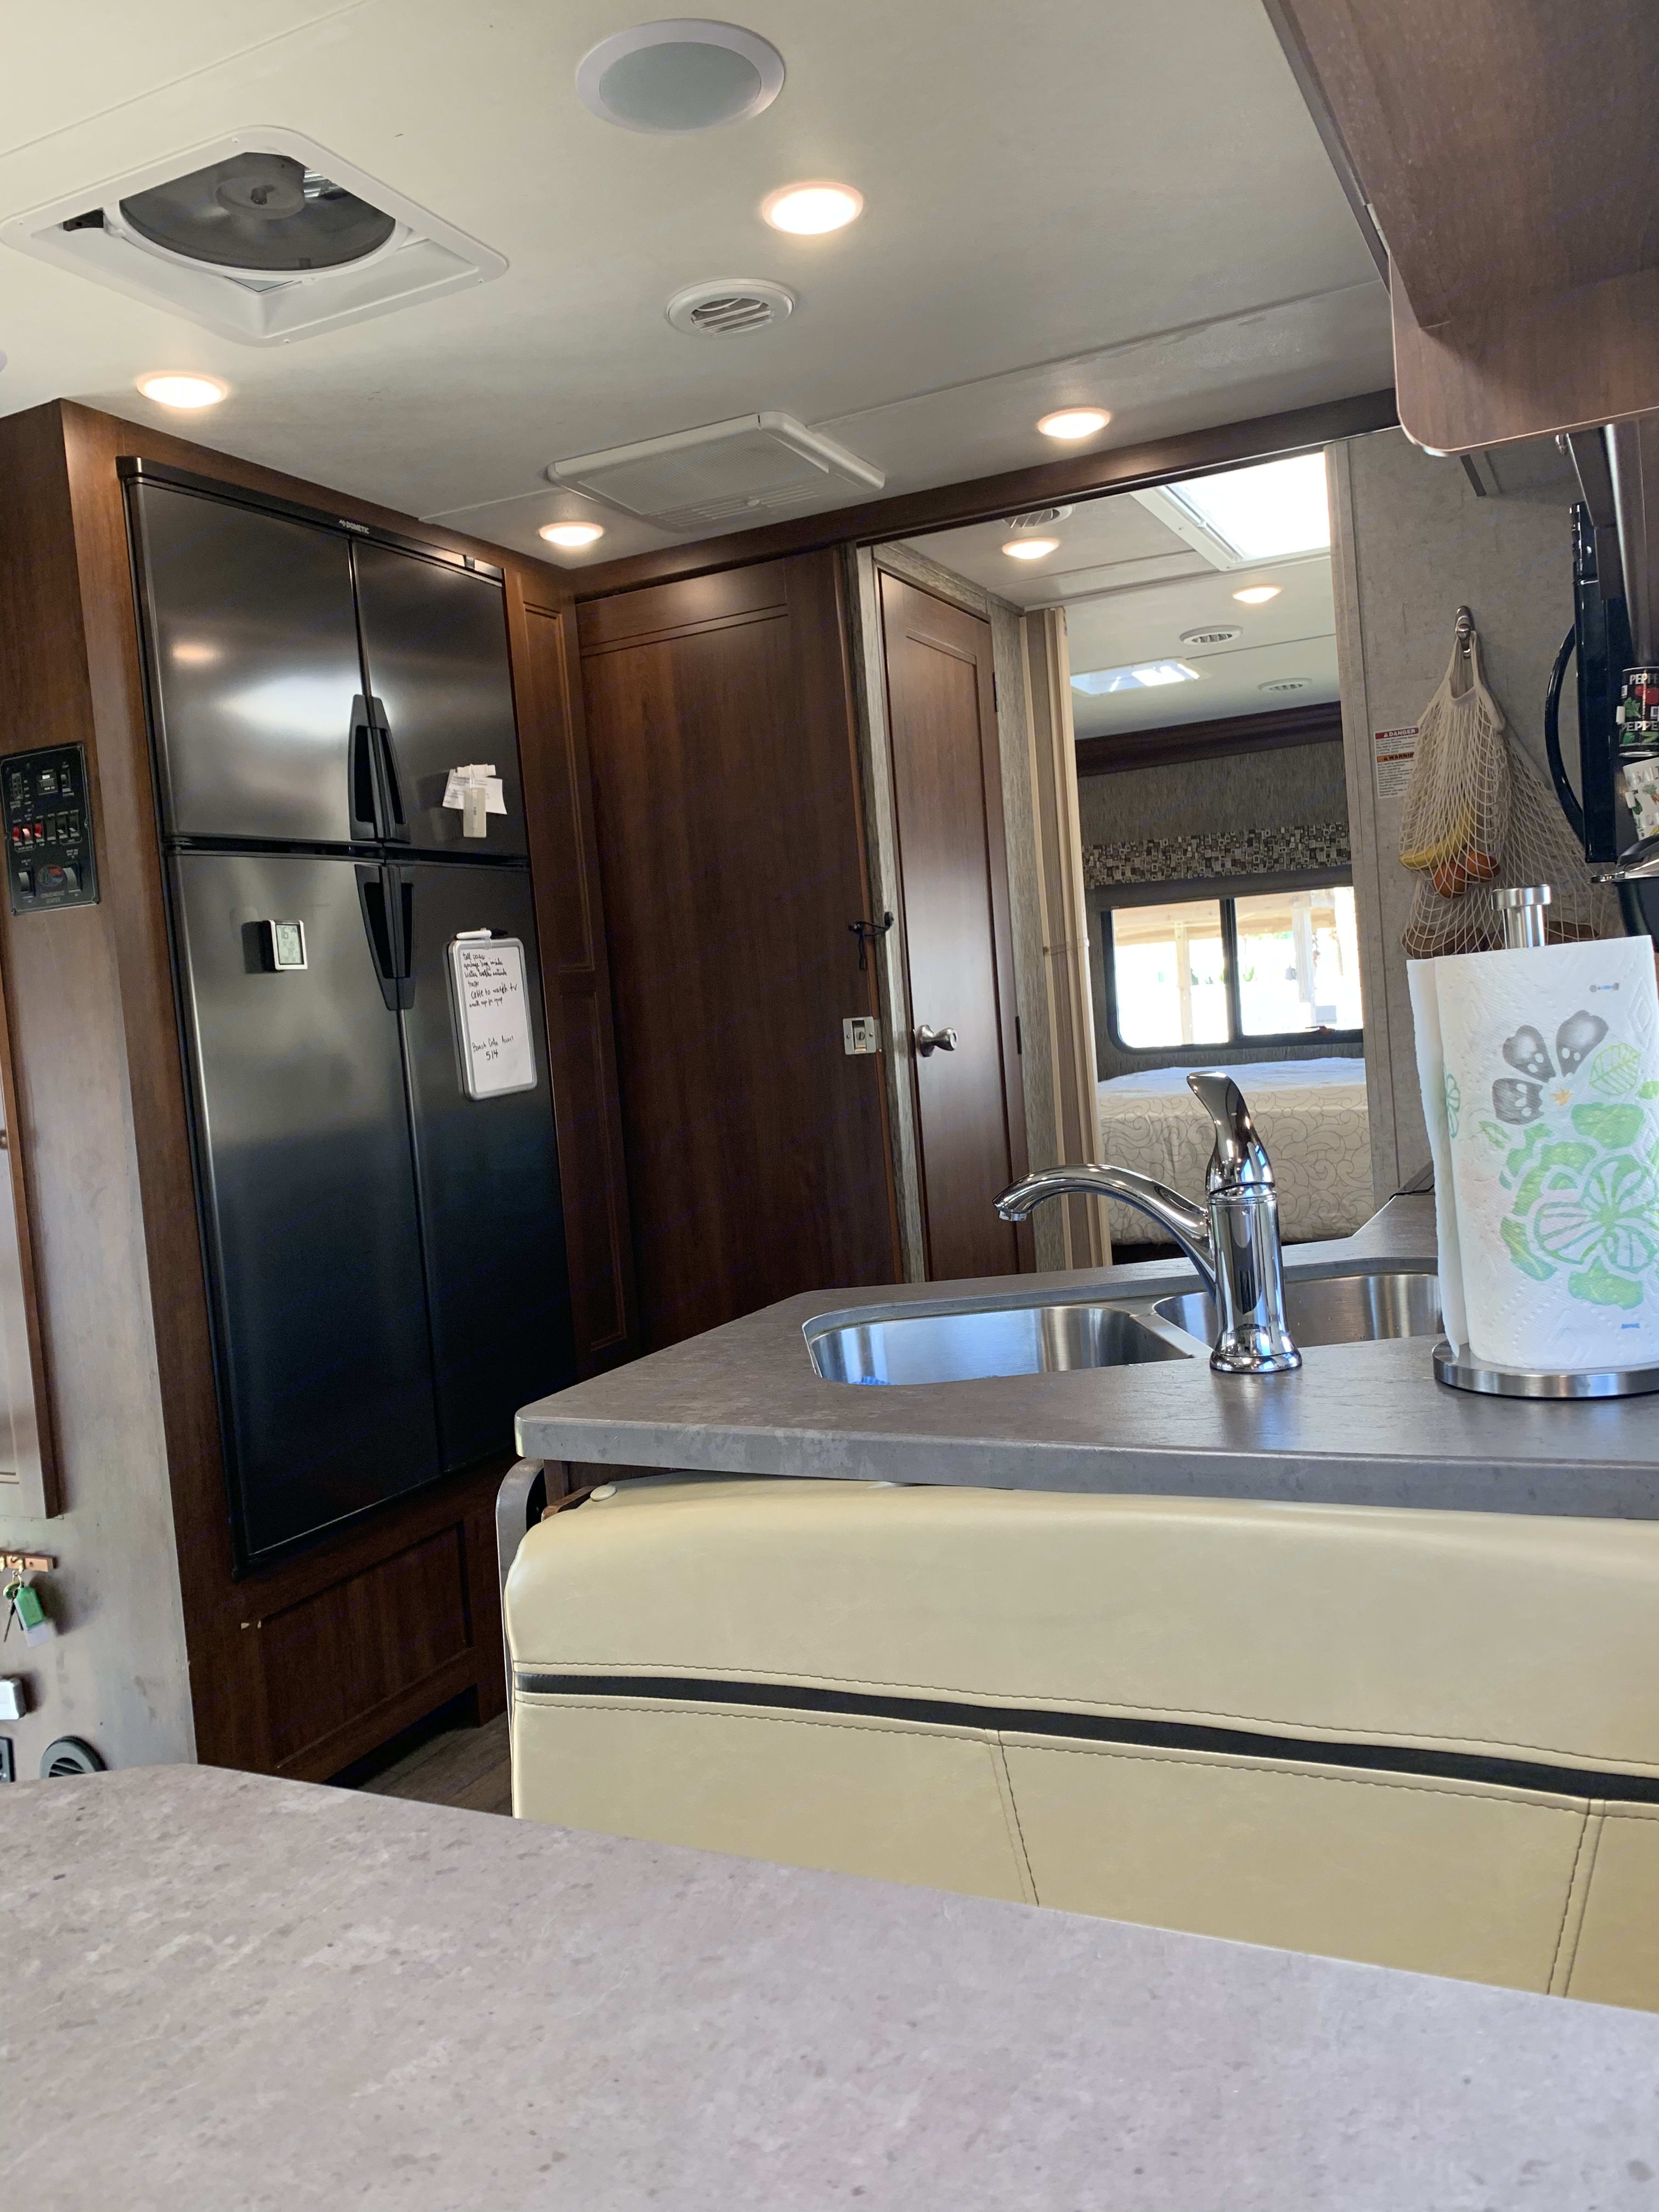 Dometic 12 Cu. ft. four door refrigerator with ice maker with pantry next to it. Rolling privacy door for bedroom. . Forest River Sunseeker 2018